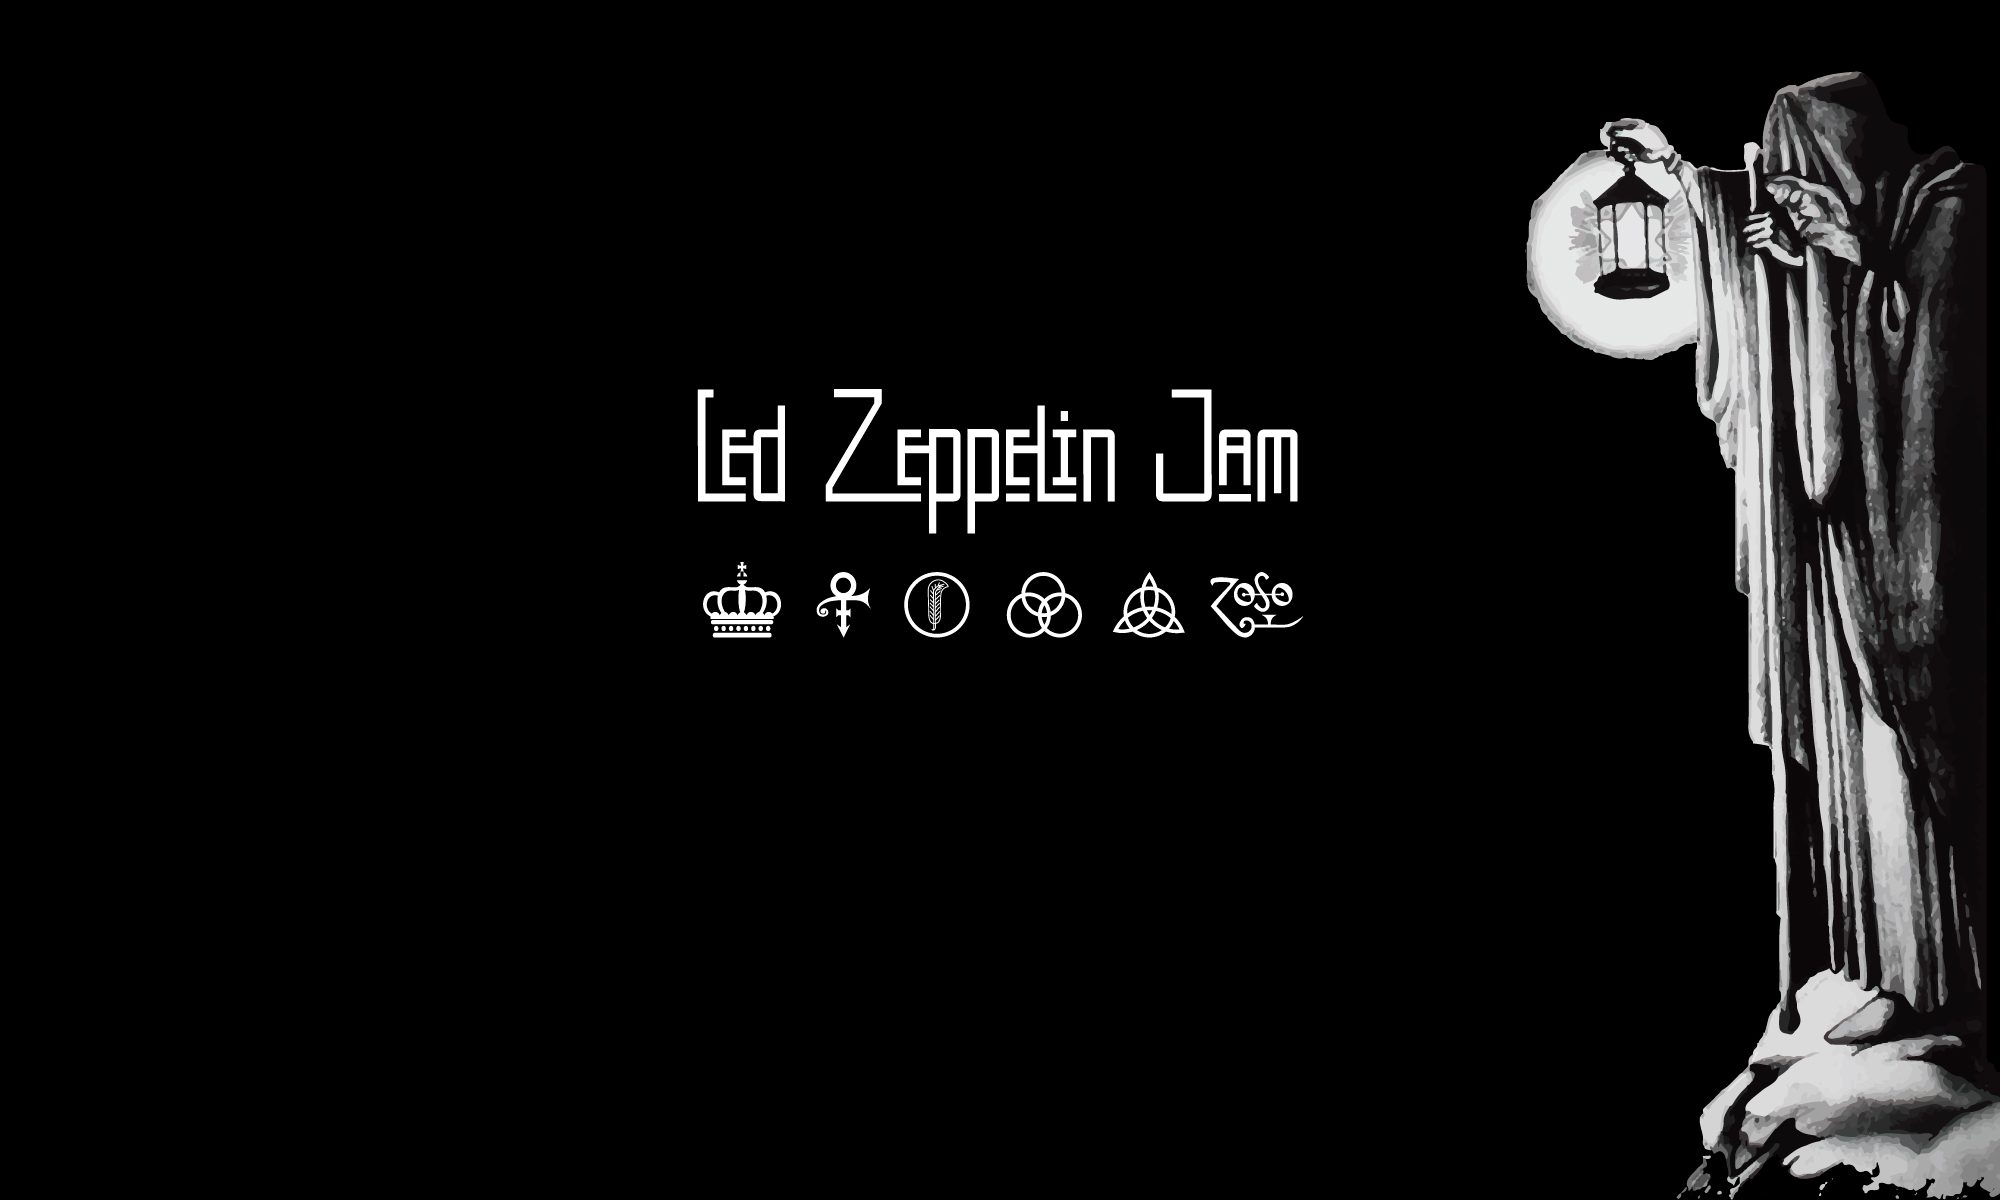 LED ZEPPELIN JAM